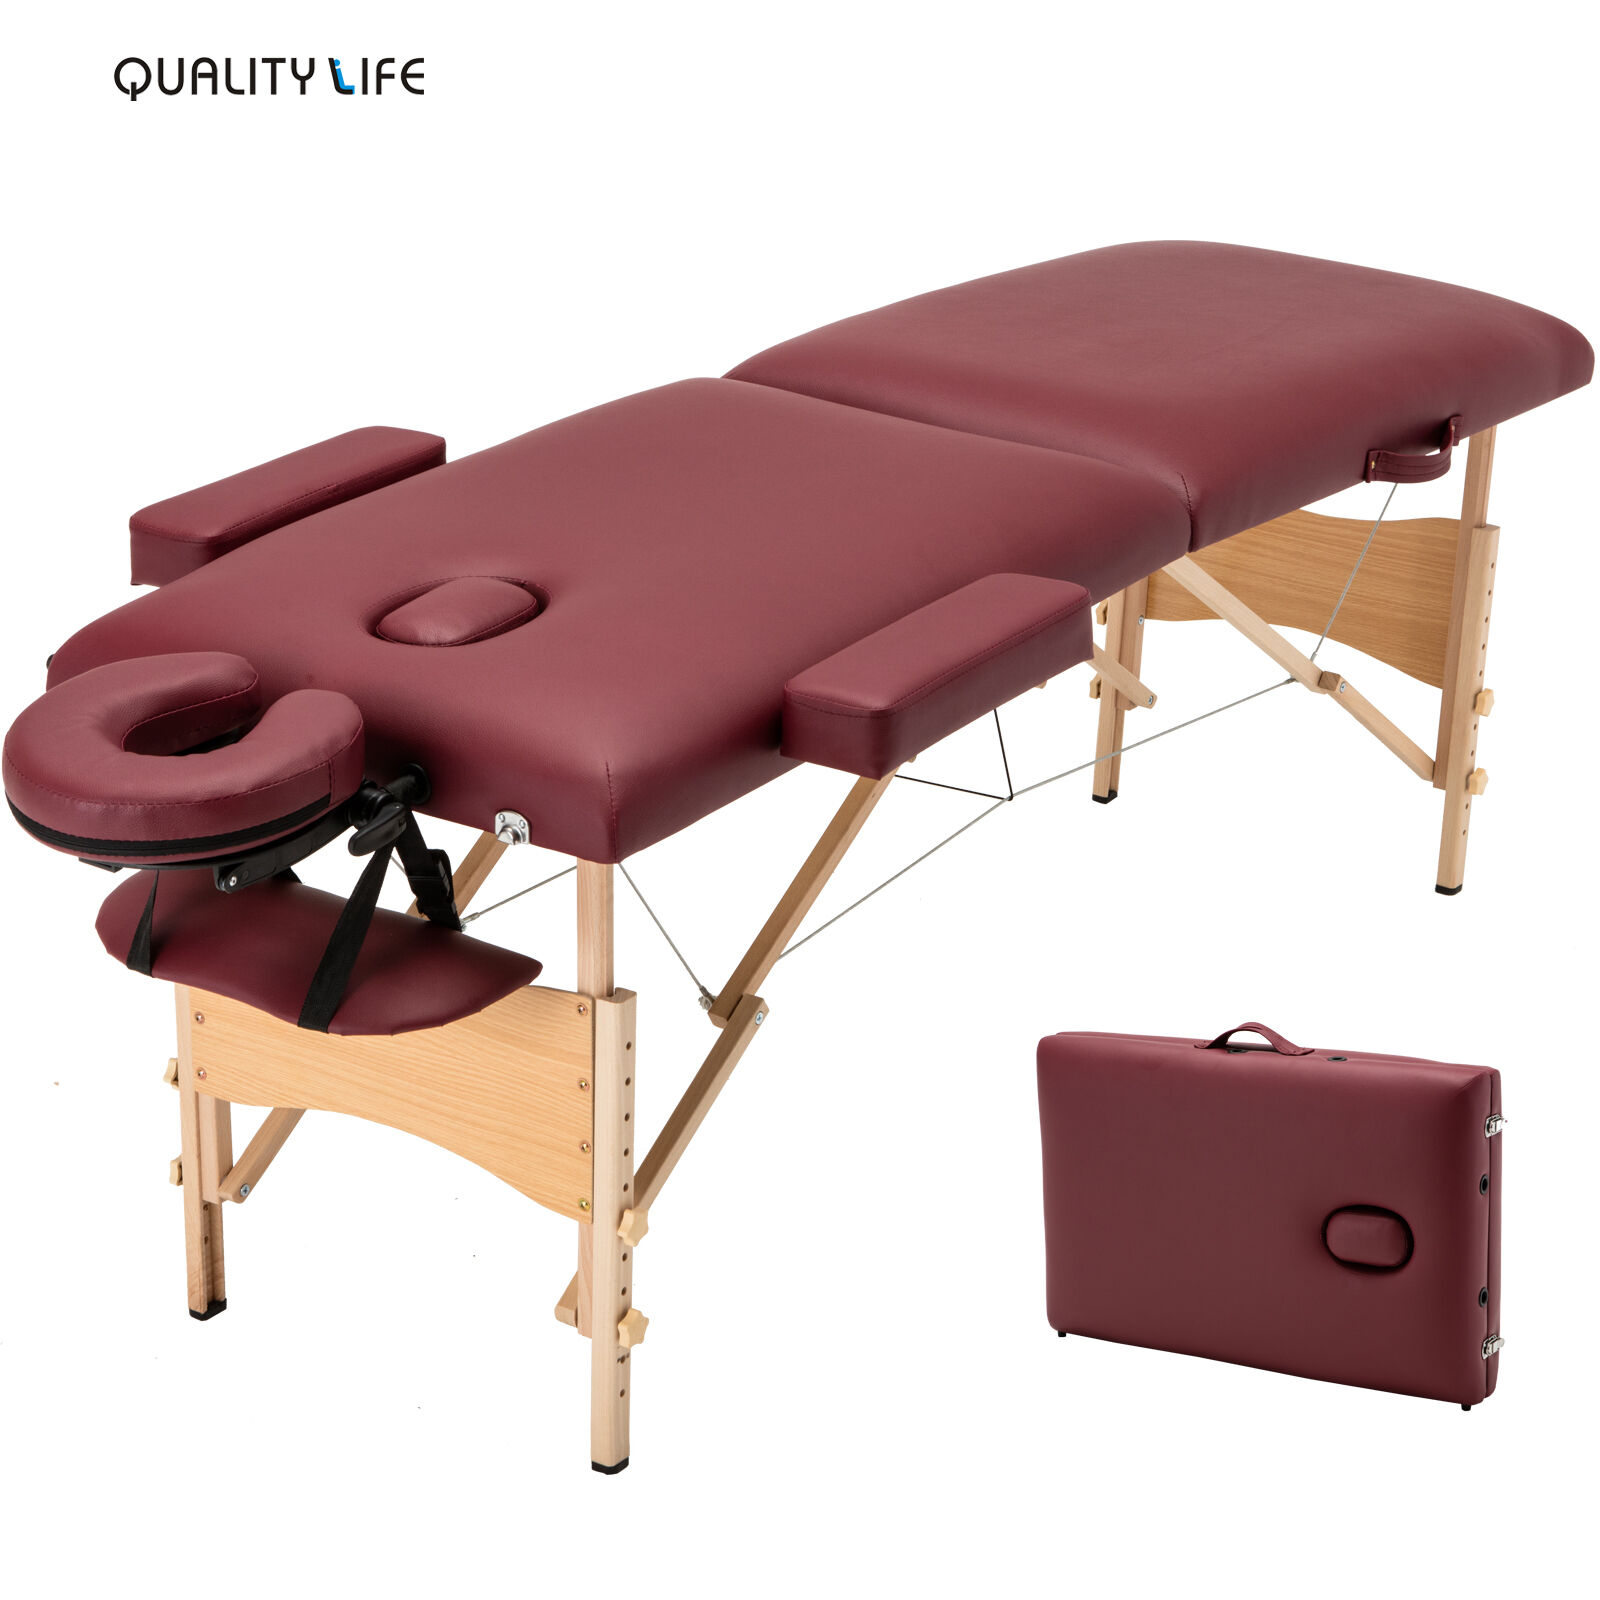 3 Fold Portable Massage Table Facial SPA Bed Tattoo w ... |Massage Table